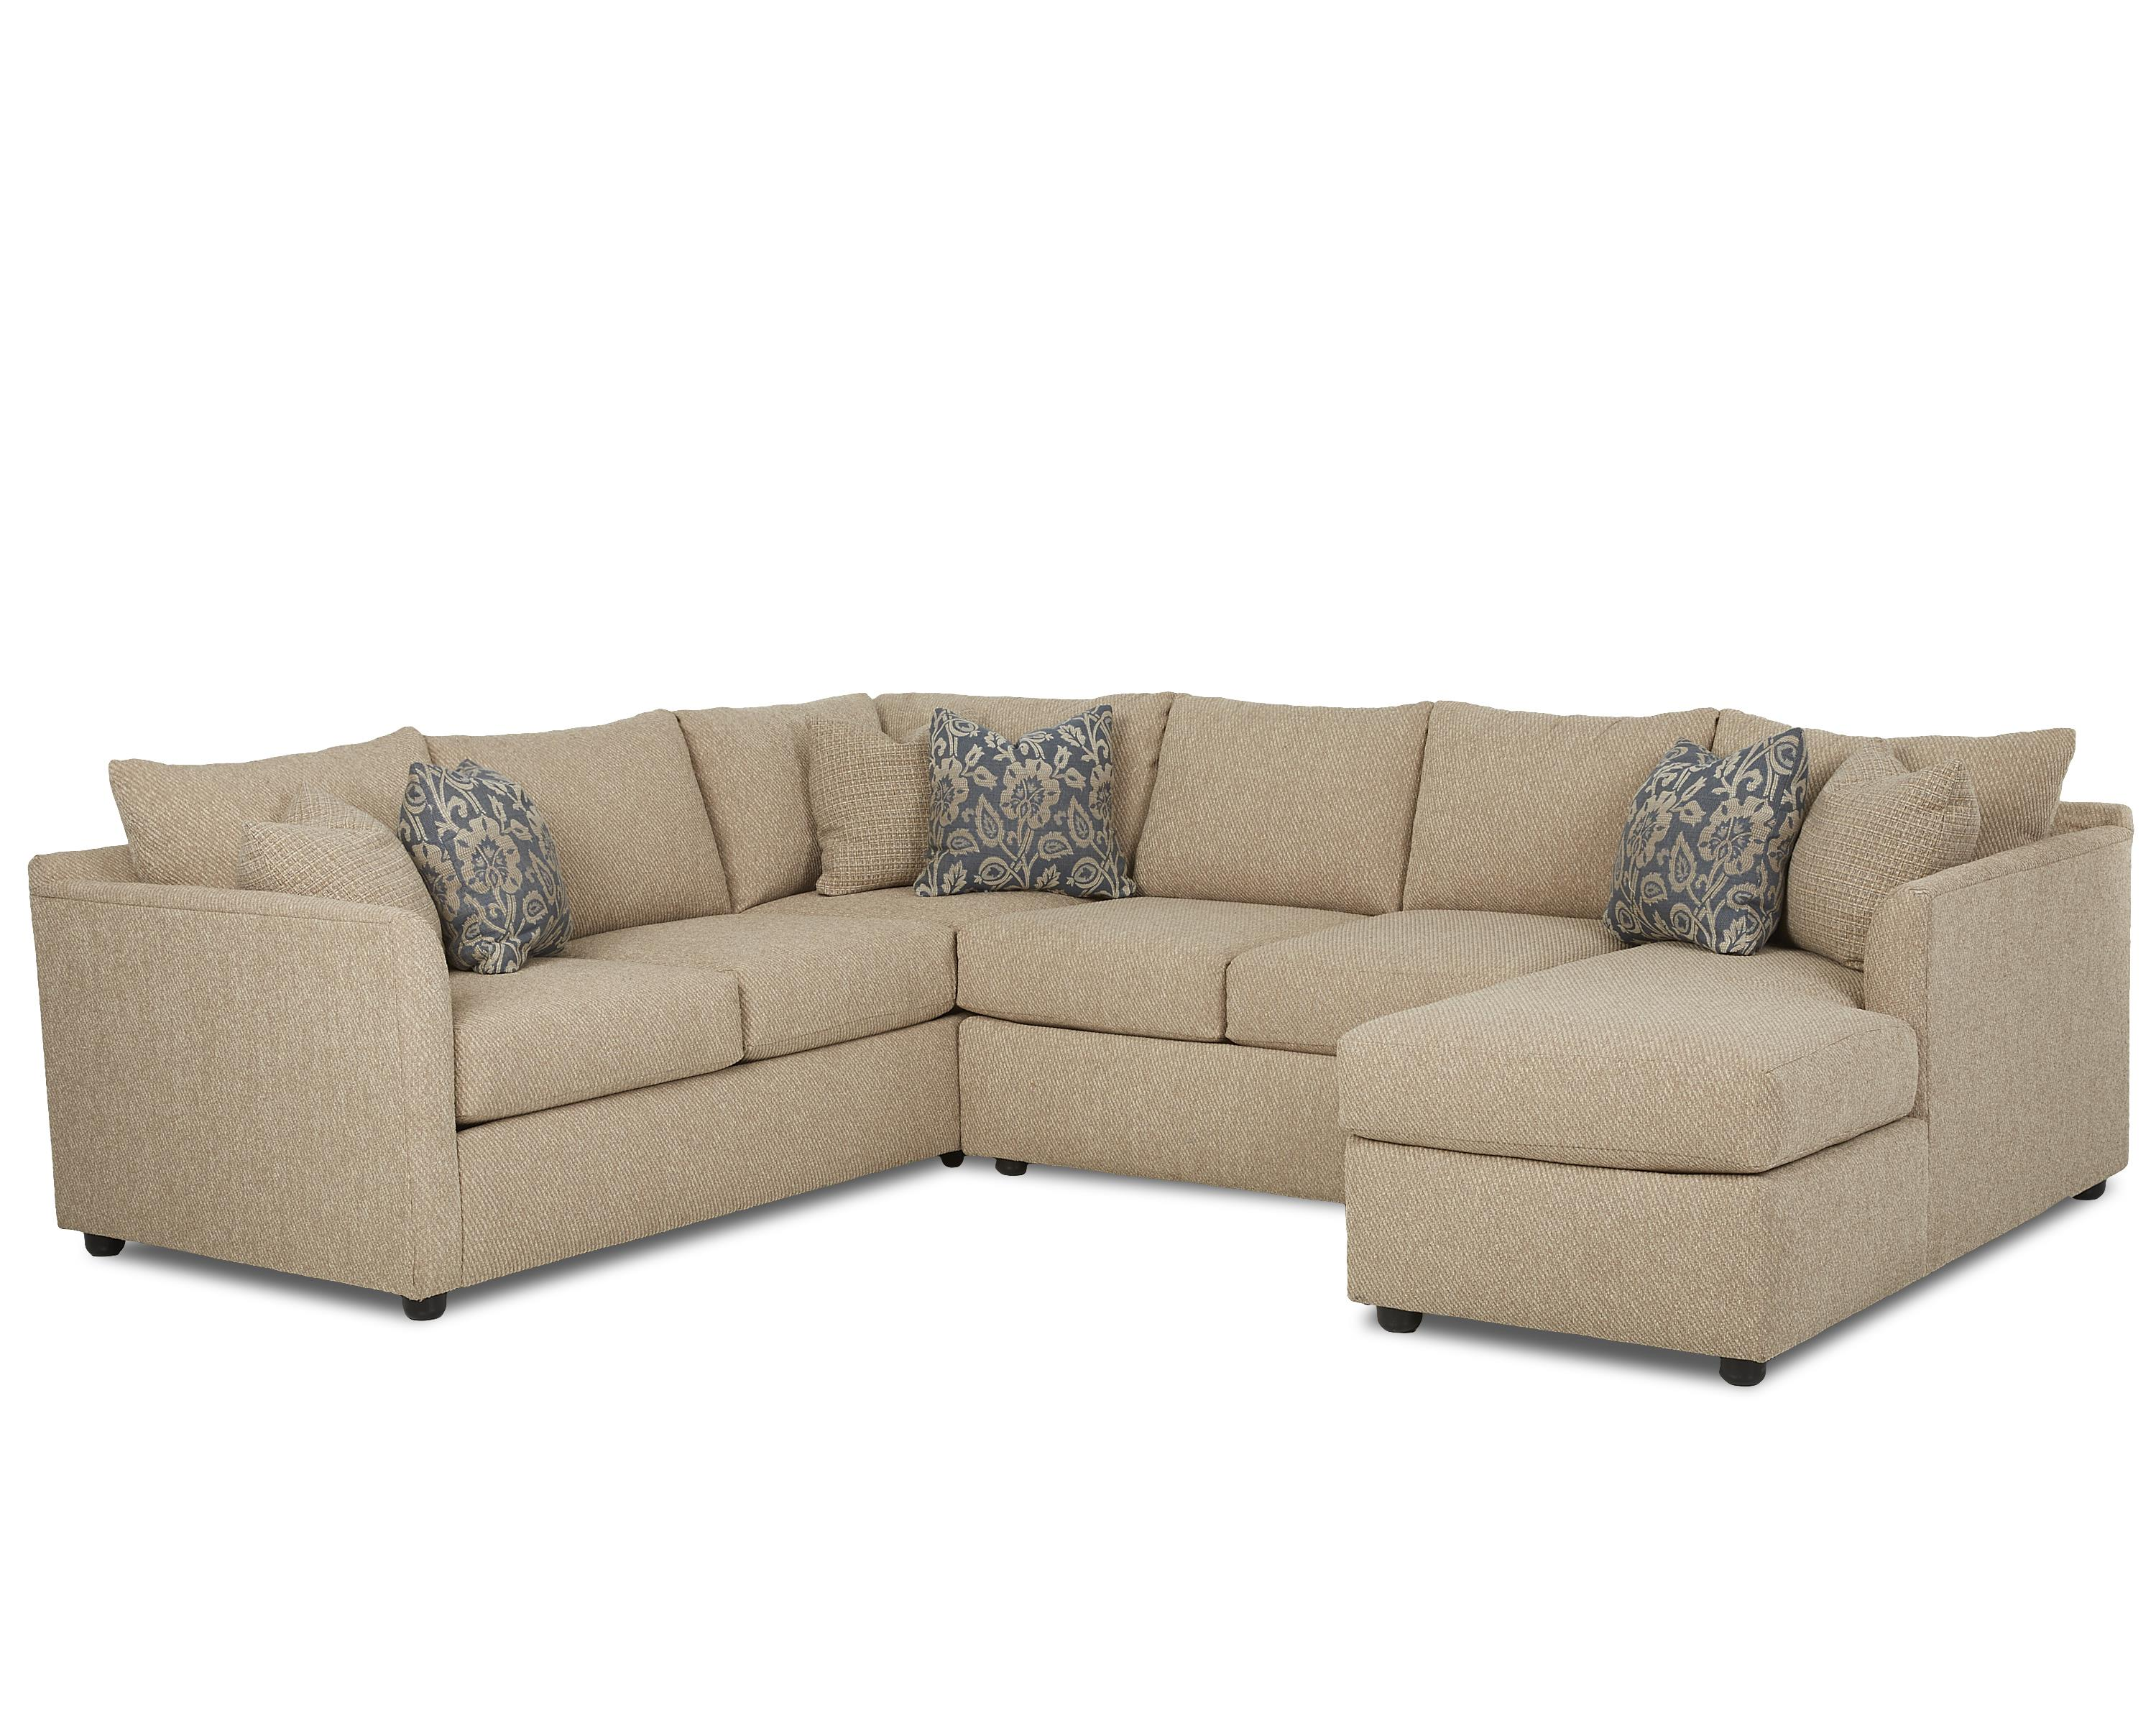 Transitional Sectional Sofa with Chaise